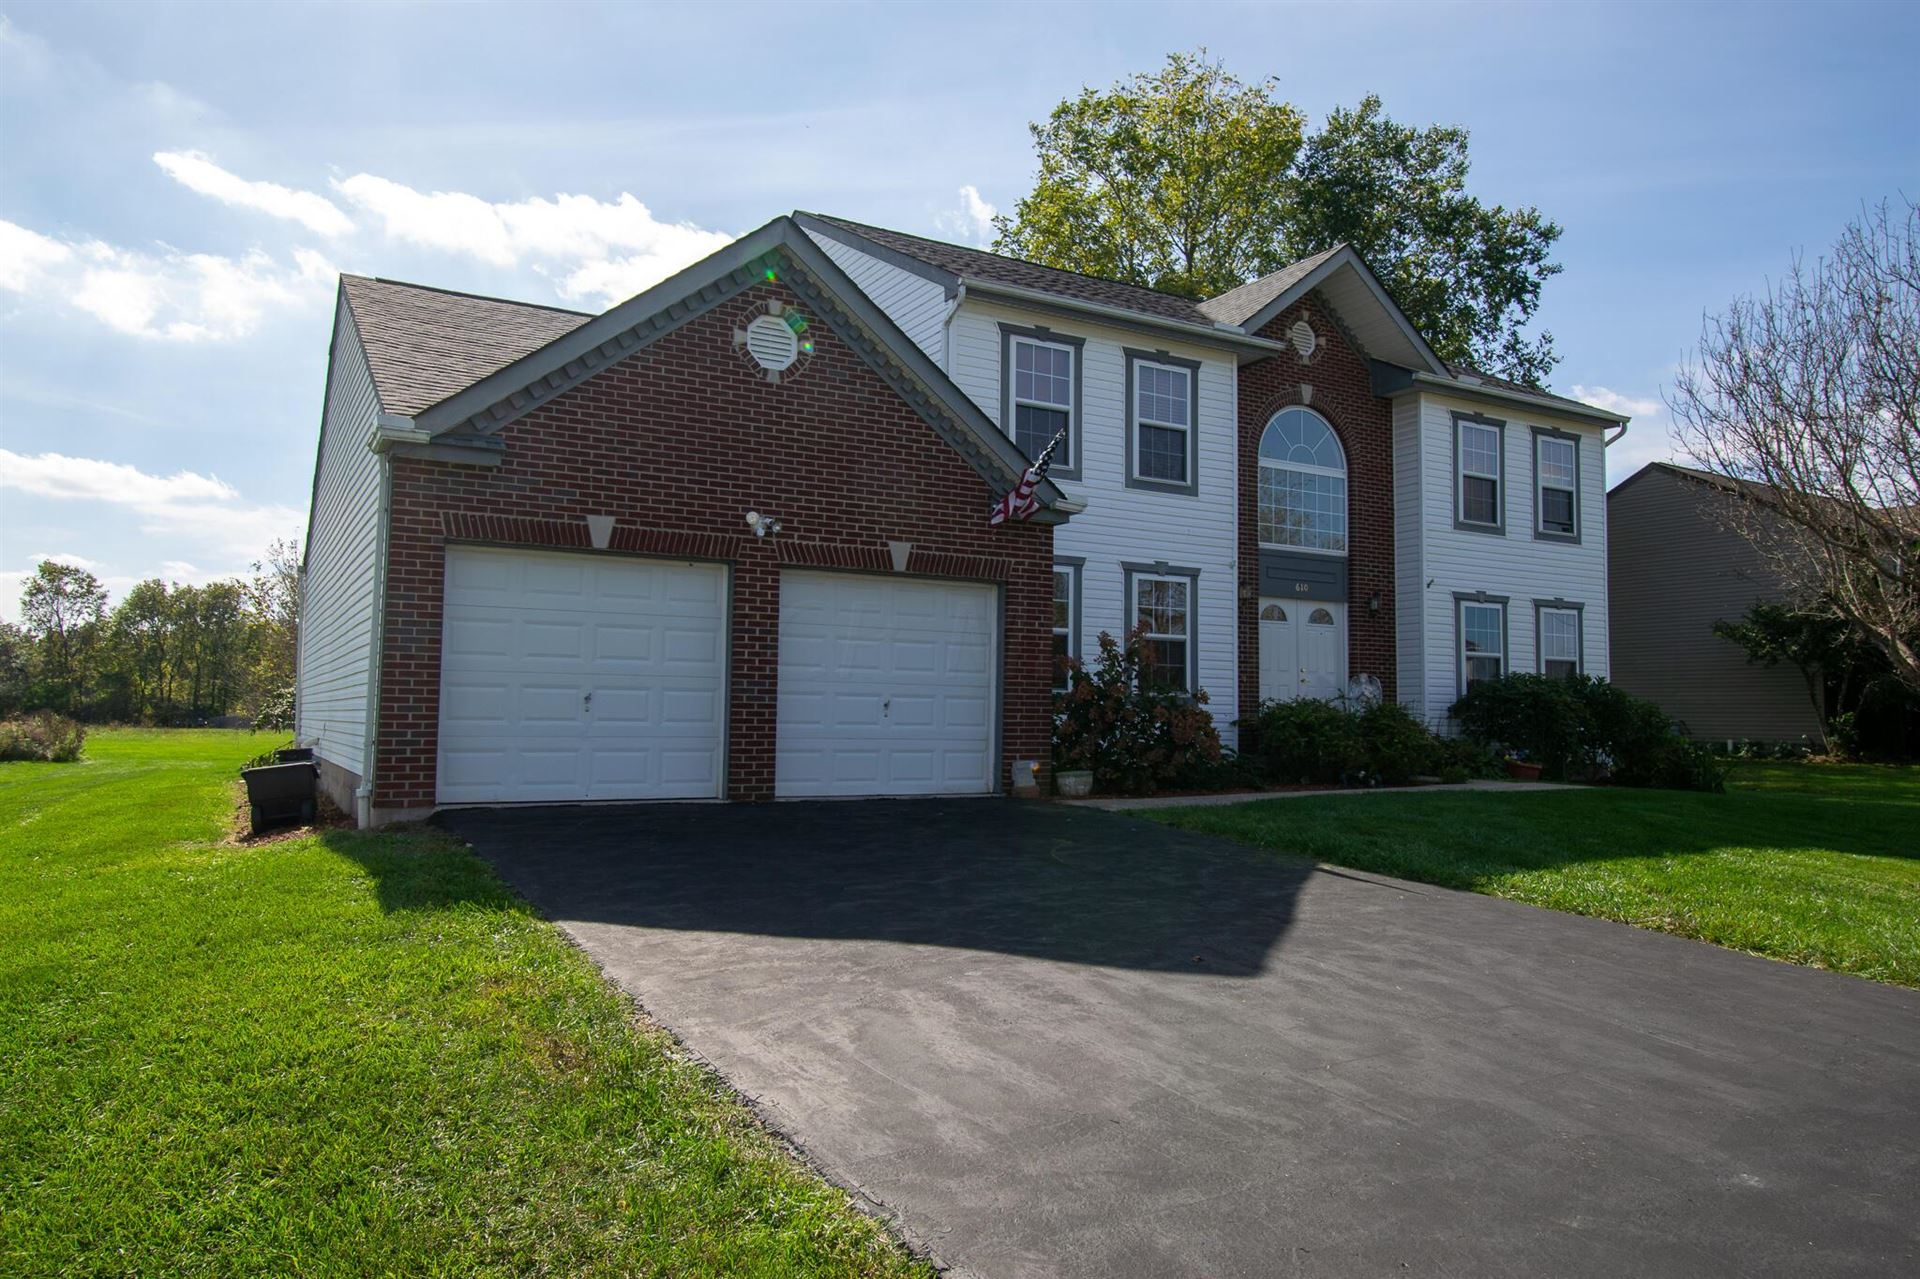 Photo of 610 Riverby Lane, Delaware, OH 43015 (MLS # 221039101)